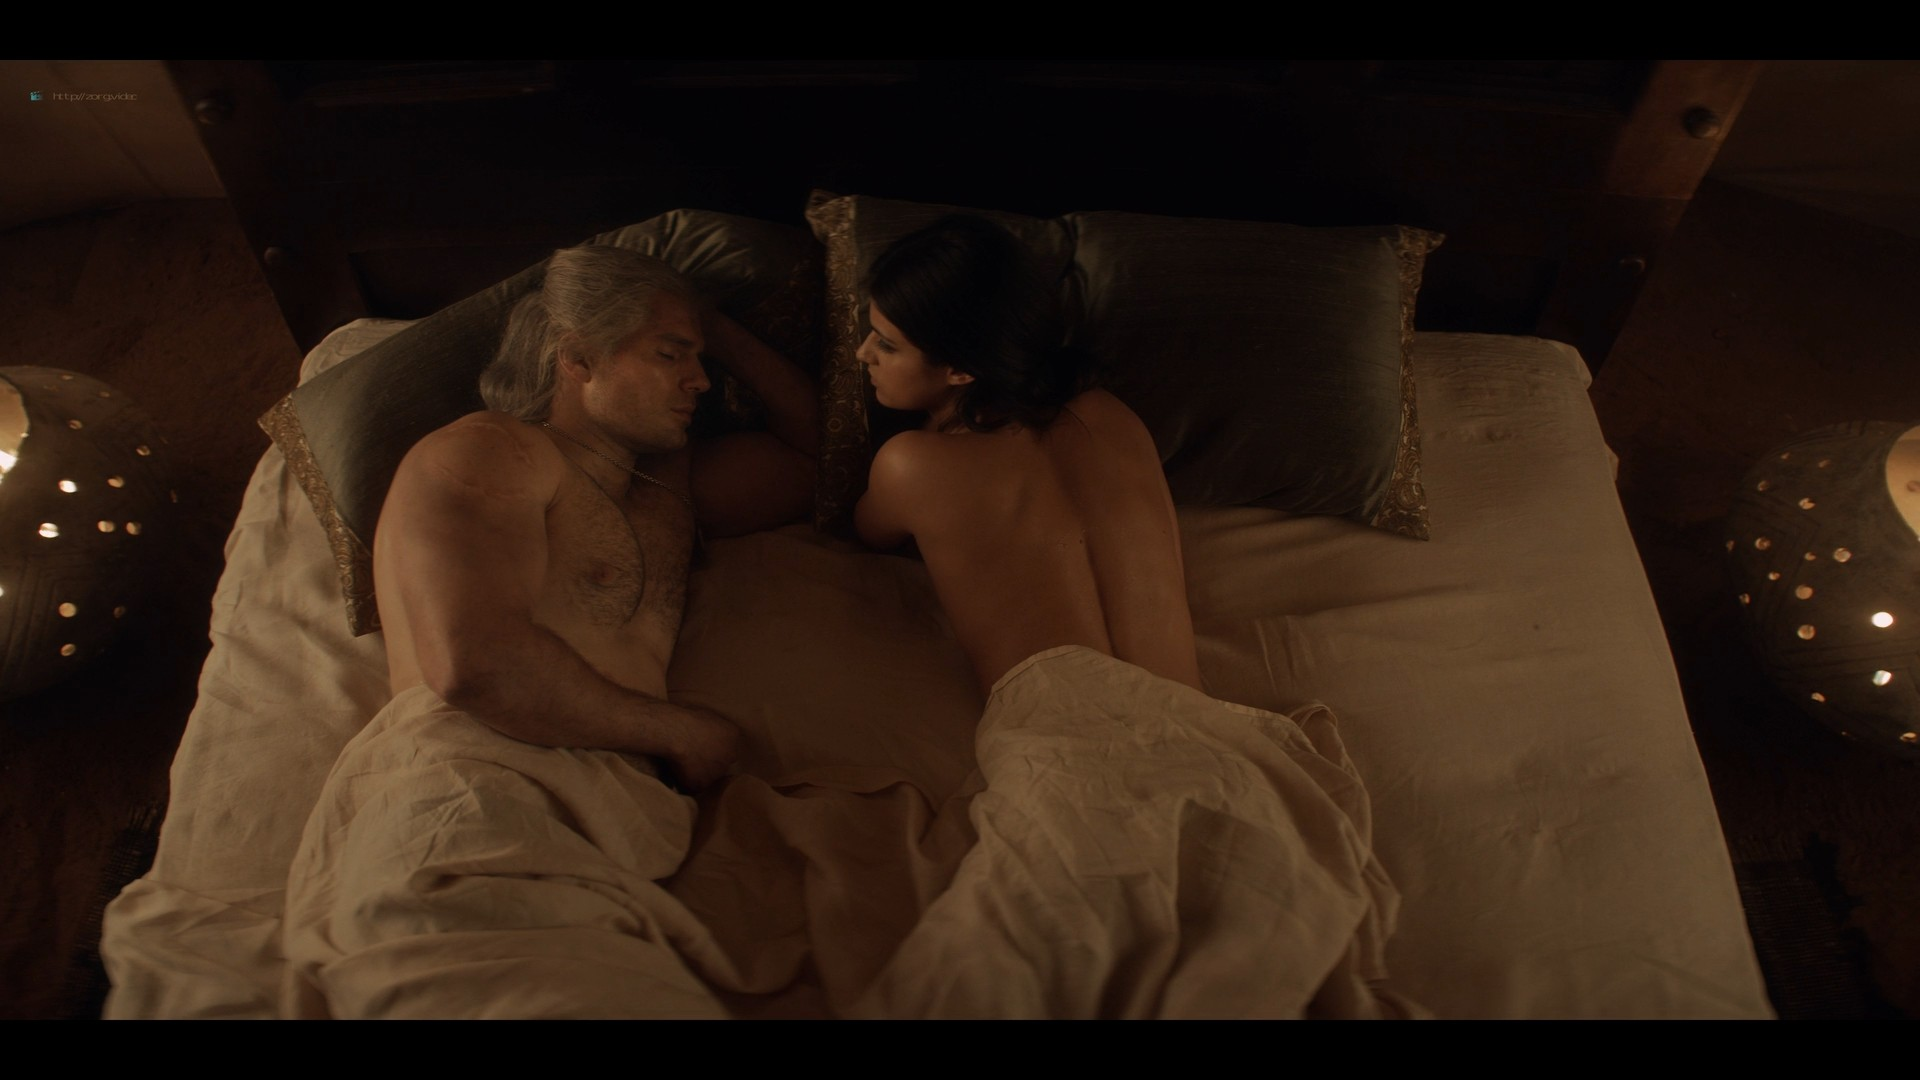 Anya Chalotra nude others nude too - The Witcher (2019) s1e5-6 HD 1080p WEB (2)